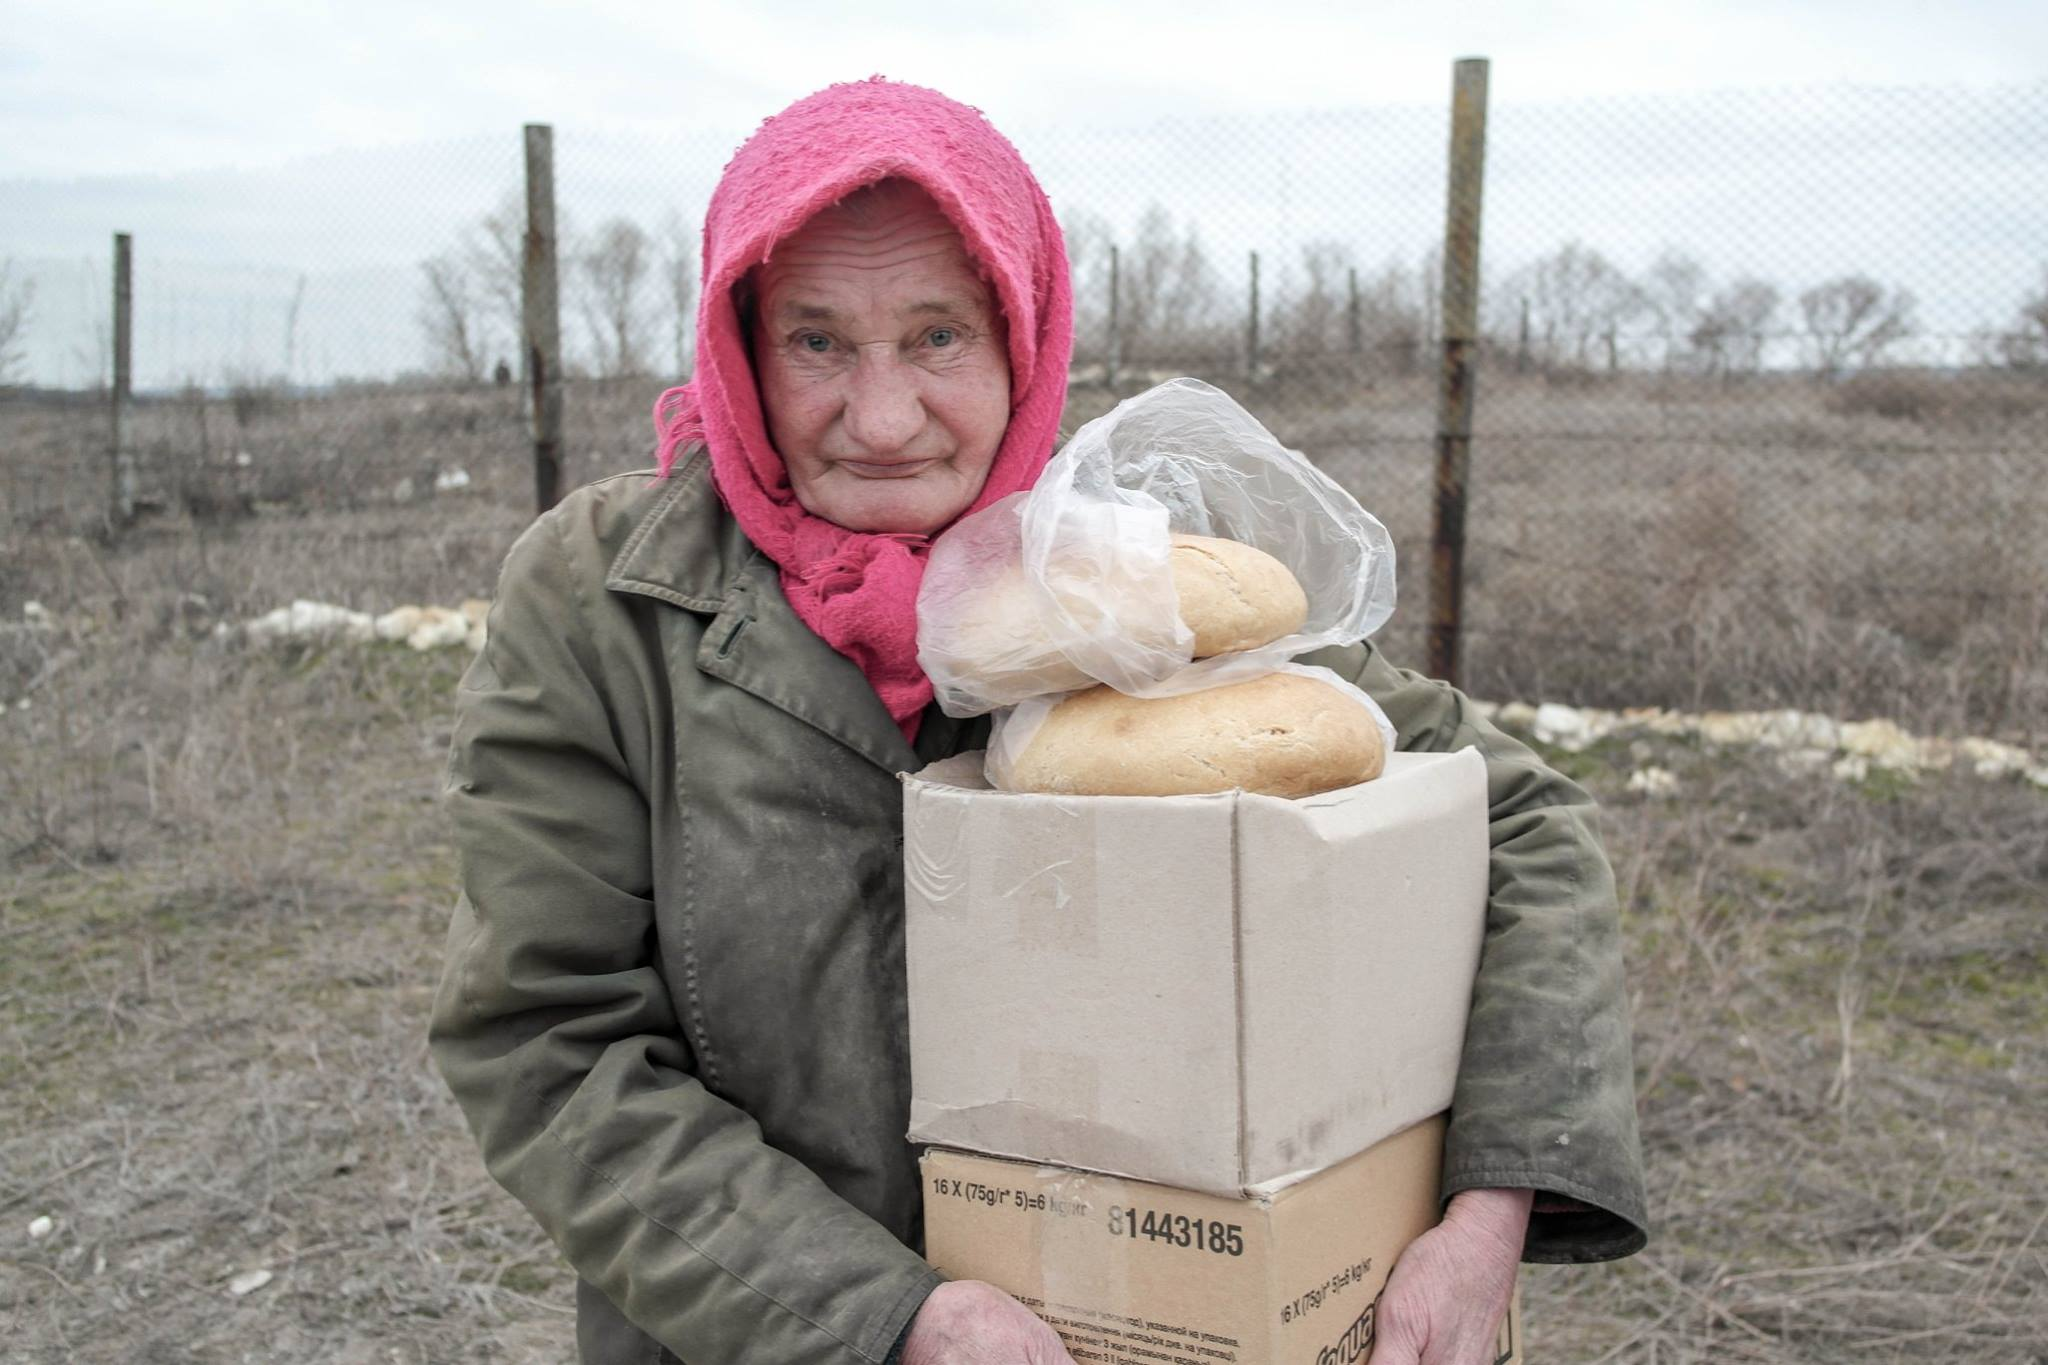 Postup provided aid for people in need in Eastern Ukraine.